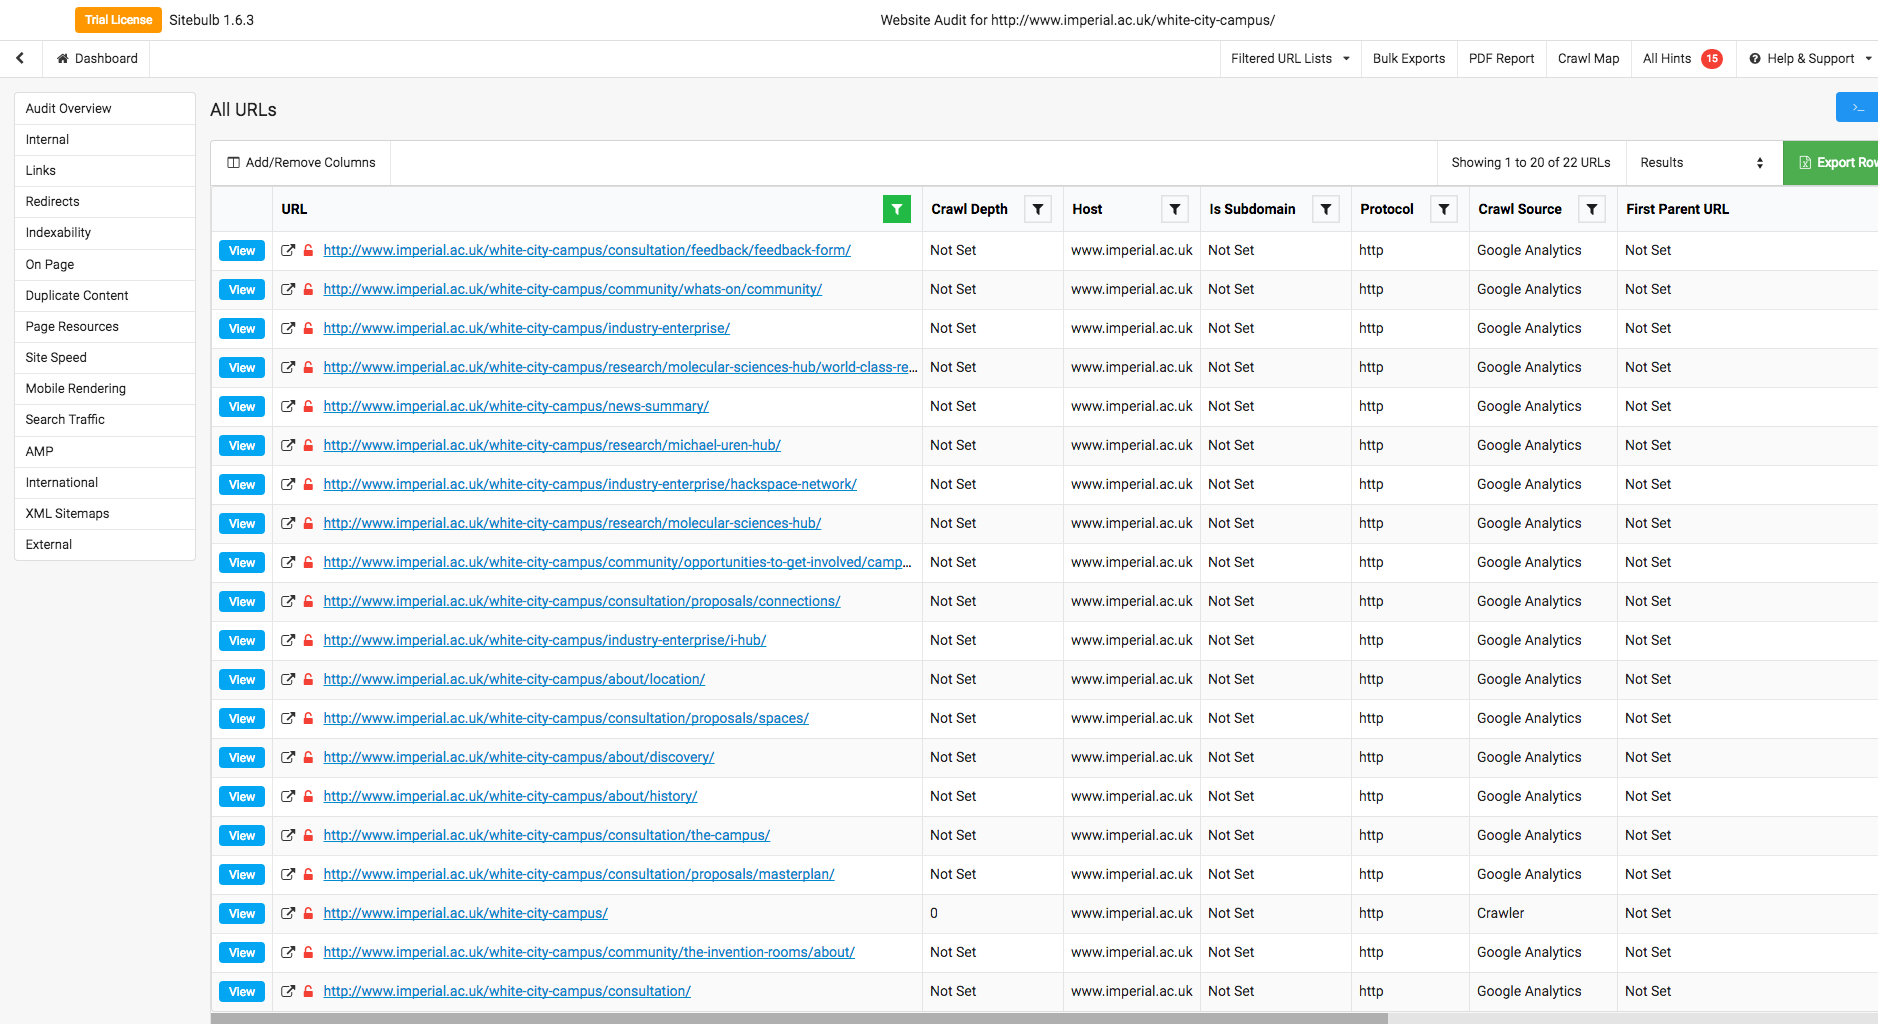 Example audit results from Sitebulb